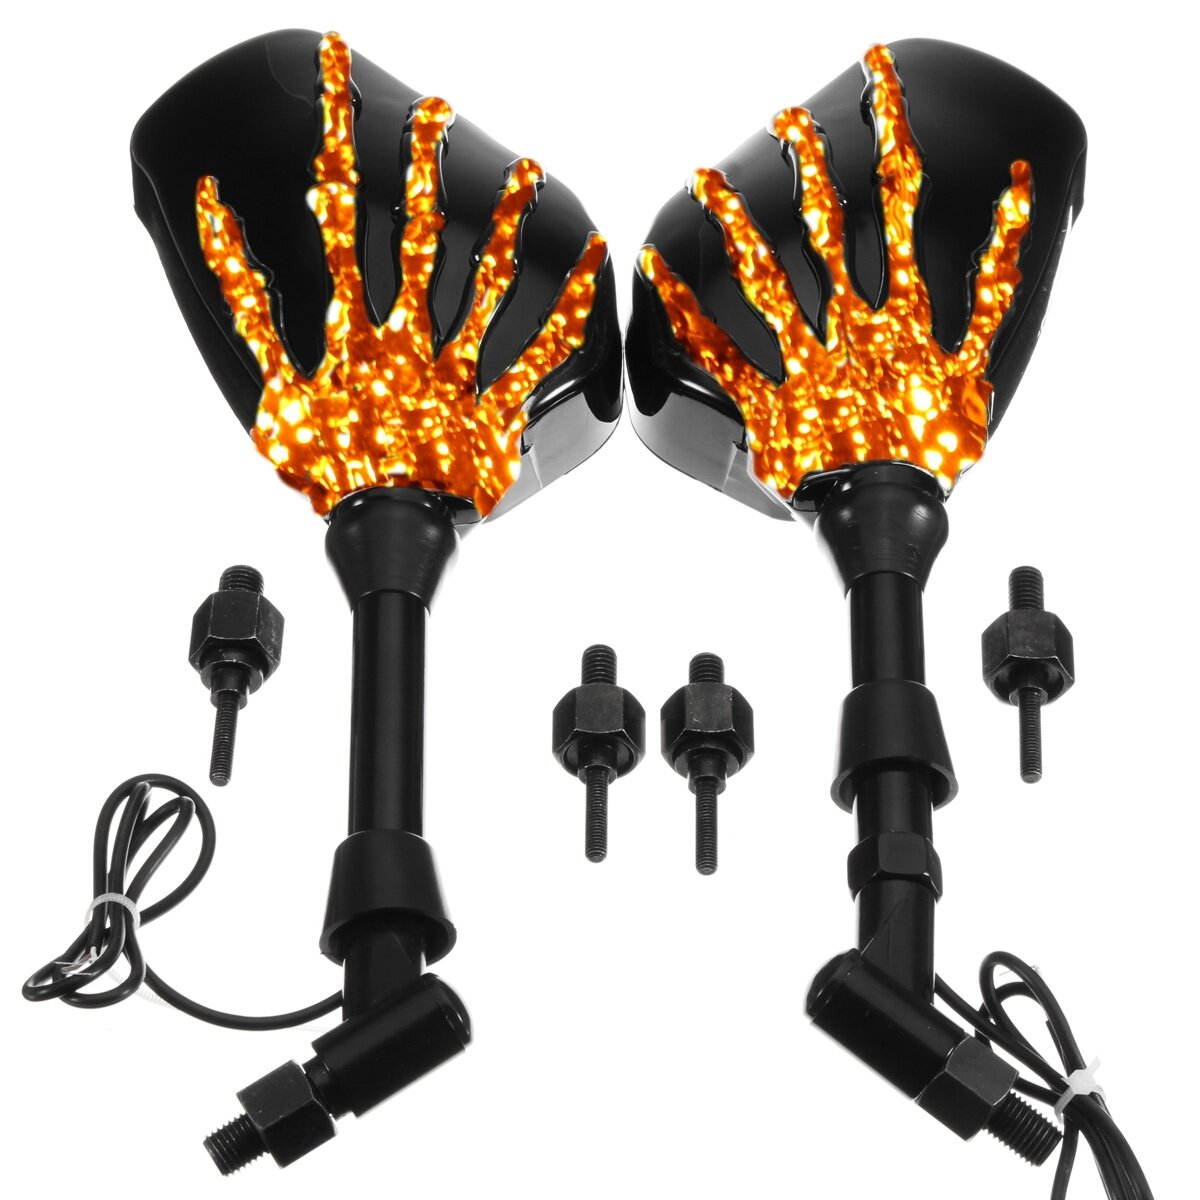 8mm 10mm Pair Skull Hand Led Turn Signal Motorcycle Mirrors For Tail Light Trouble Help With Wires Page 2 Harley Cruiser